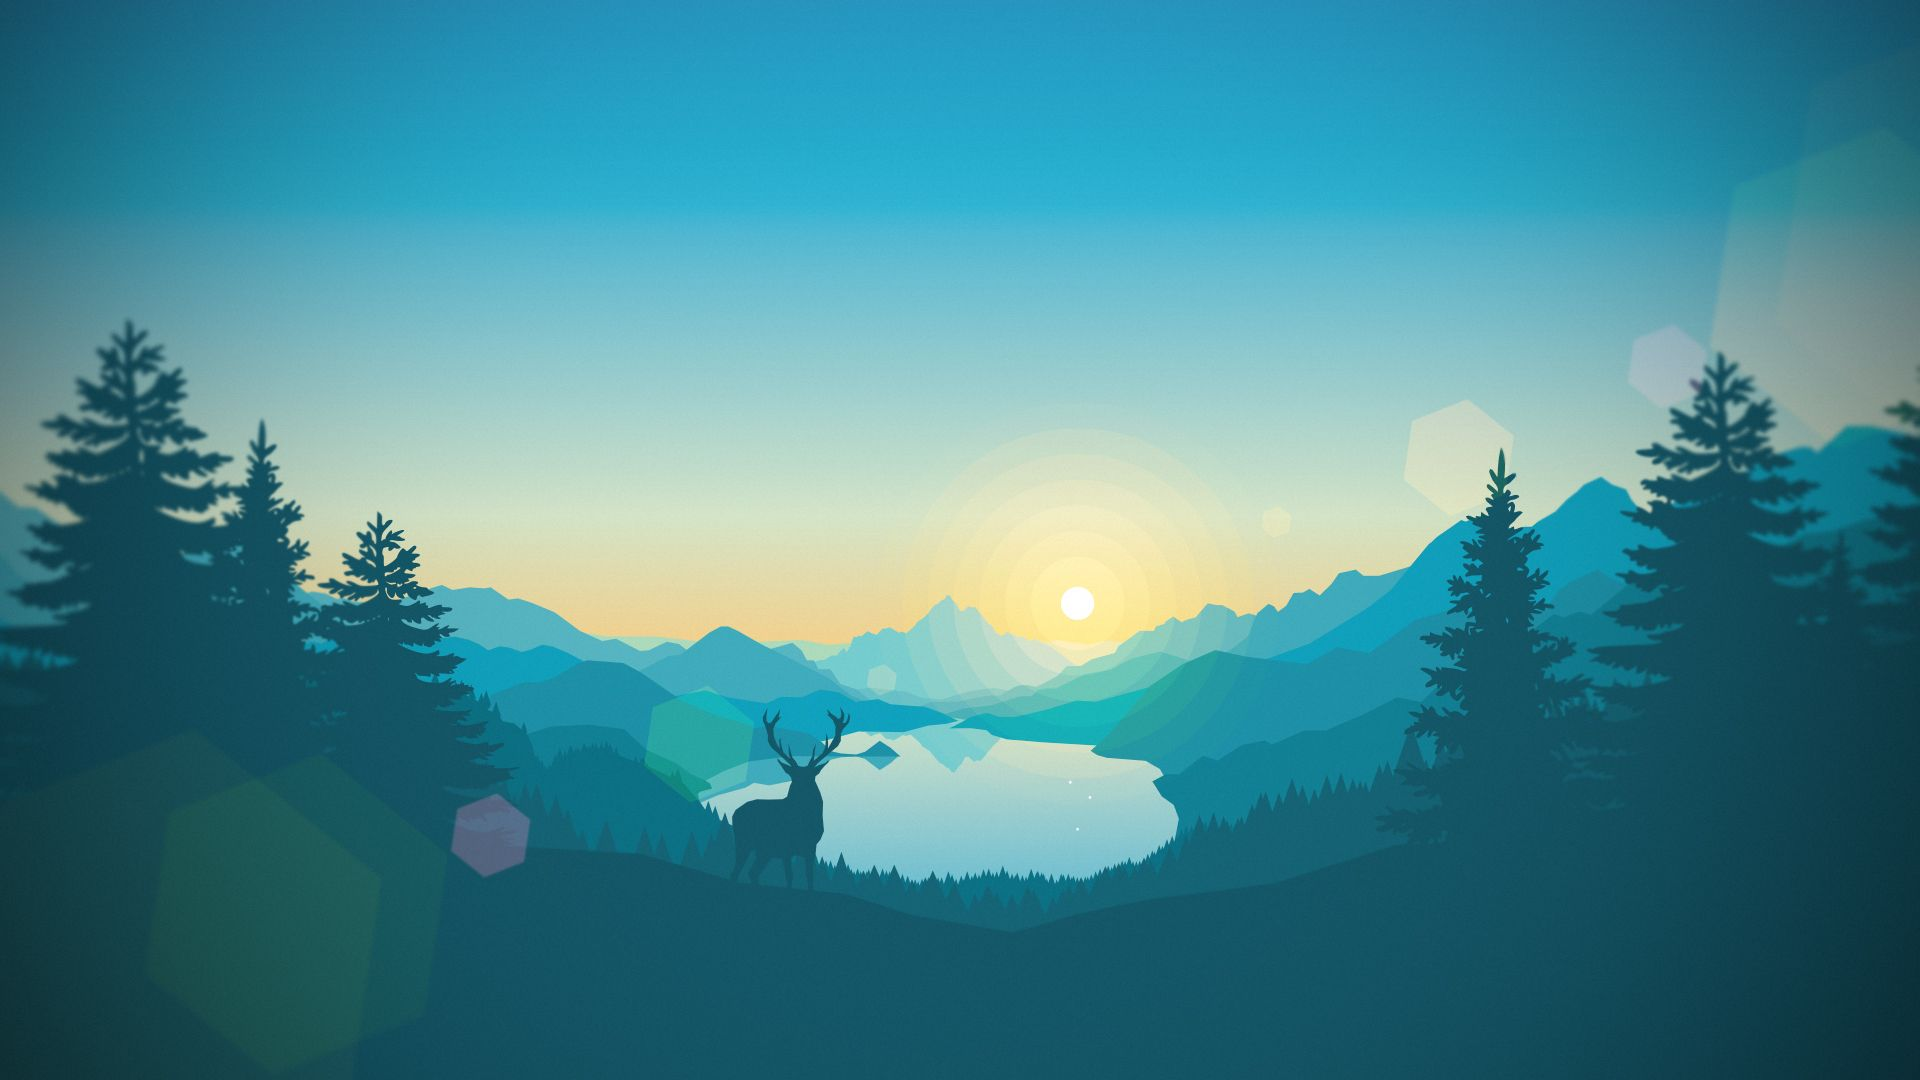 Free Mountain Vector picture